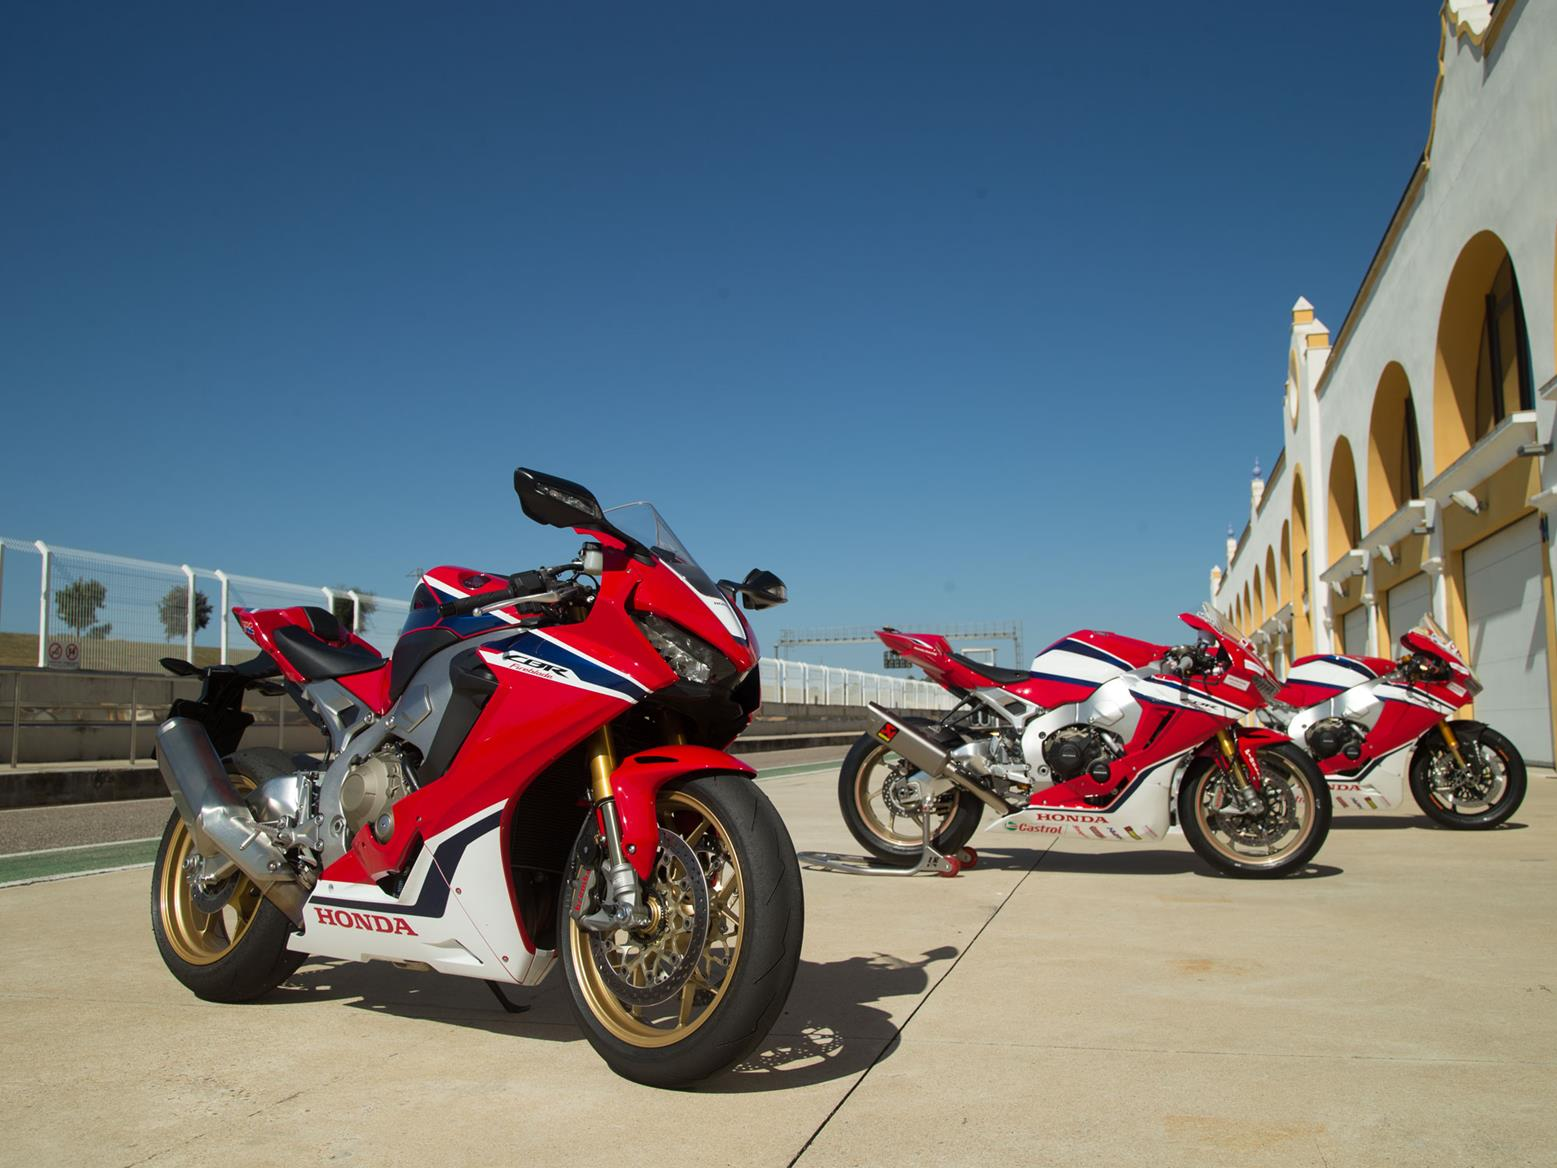 Reflecting on the Honda Fireblade and its journey from road to race